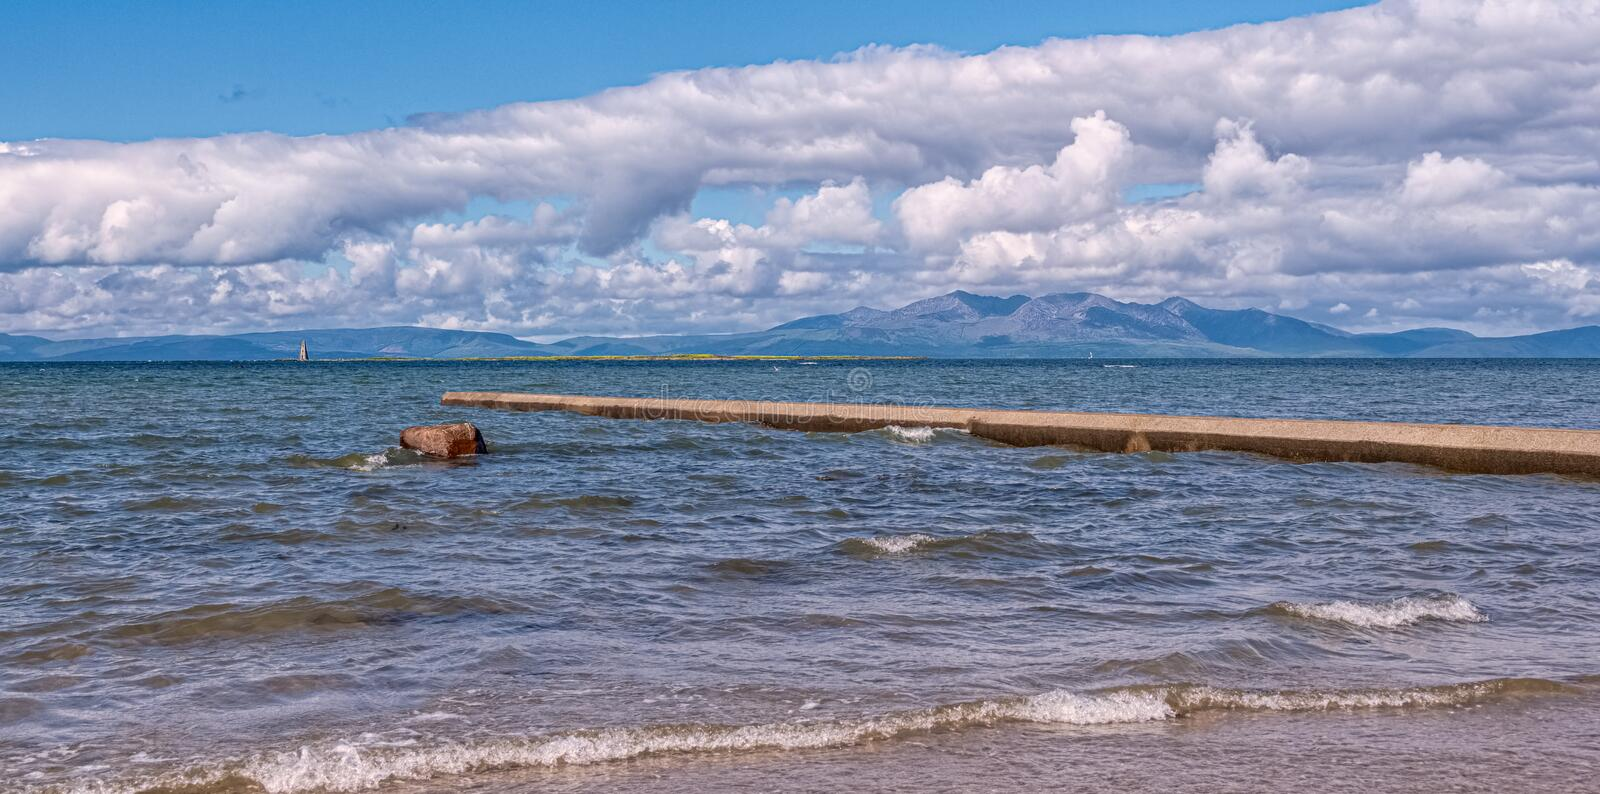 Arran on the West Coast of Scotland From the Town of Ardrossan. The Isle of Arran on a bright cloudy day looking over the River Clyde with Horse Island also in royalty free stock photos